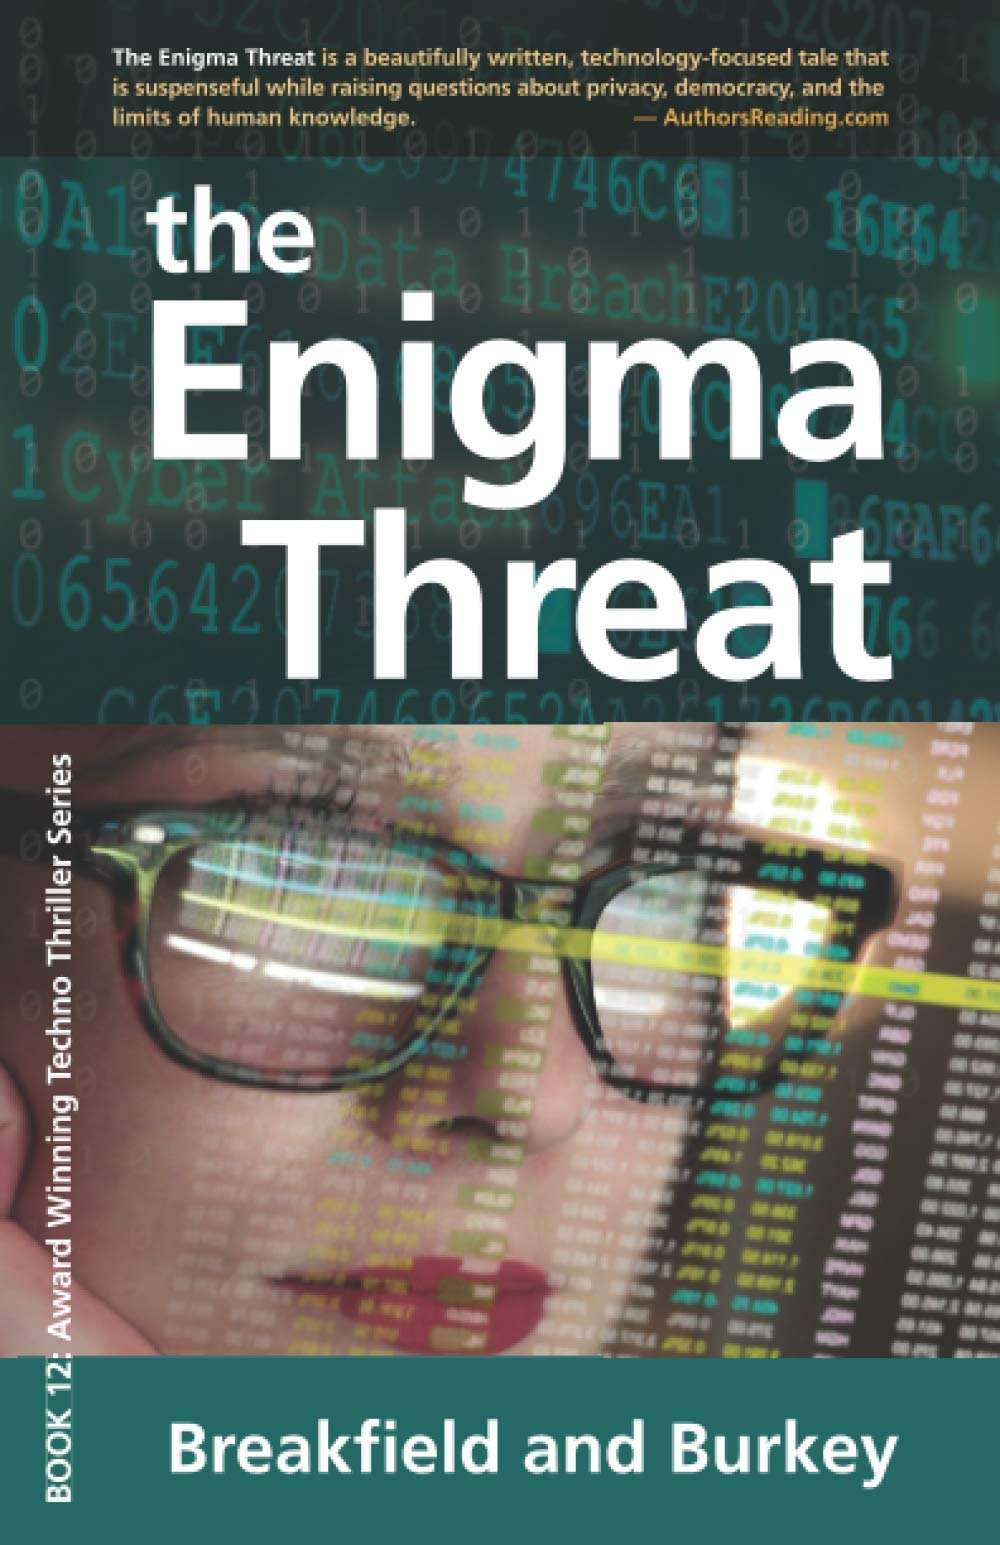 Award-Winning Enigma Books Series Authors, Breakfield And Burkey Release Their Latest Book 1